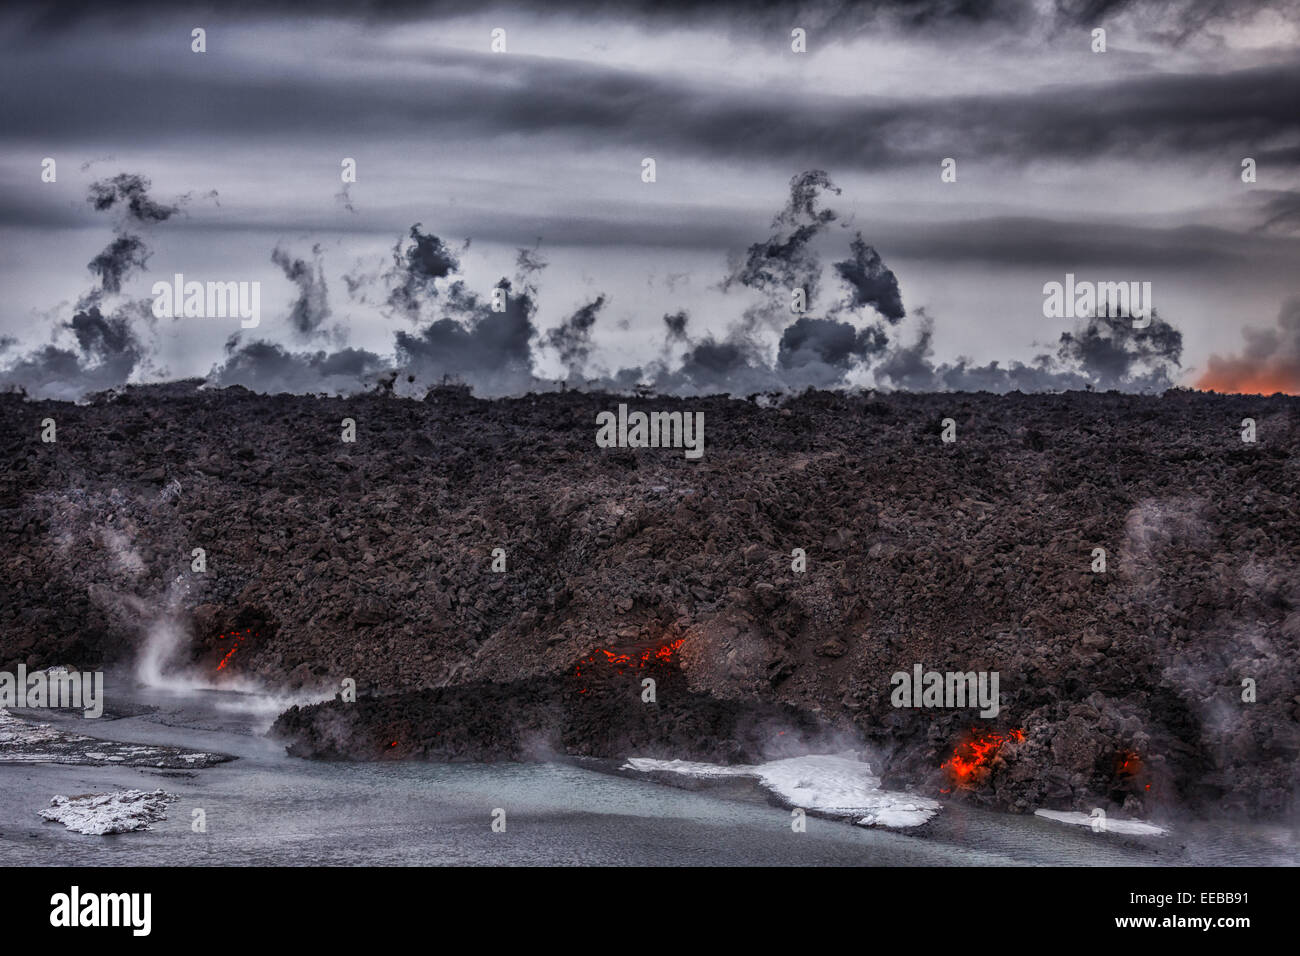 Volcano Eruption at the Holuhraun Fissure near the Bardarbunga Volcano, Iceland. Aerial view of lava and steam. - Stock Image